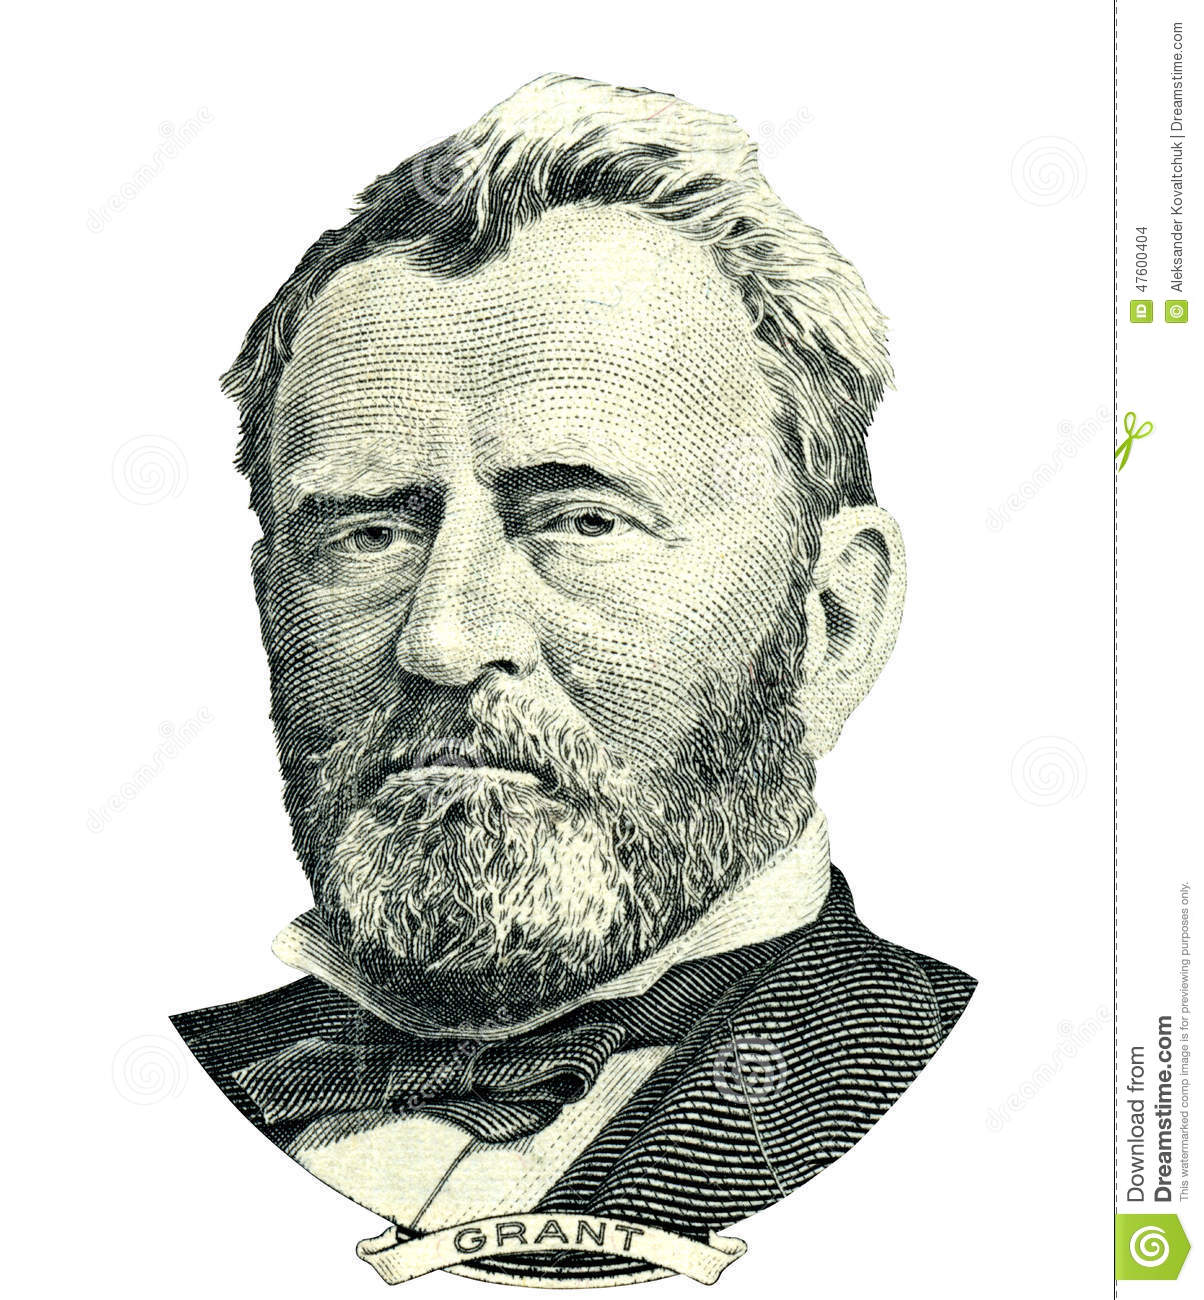 Ulysses S. Grant Portrait Cutout (Clipping Path) Stock Photo.